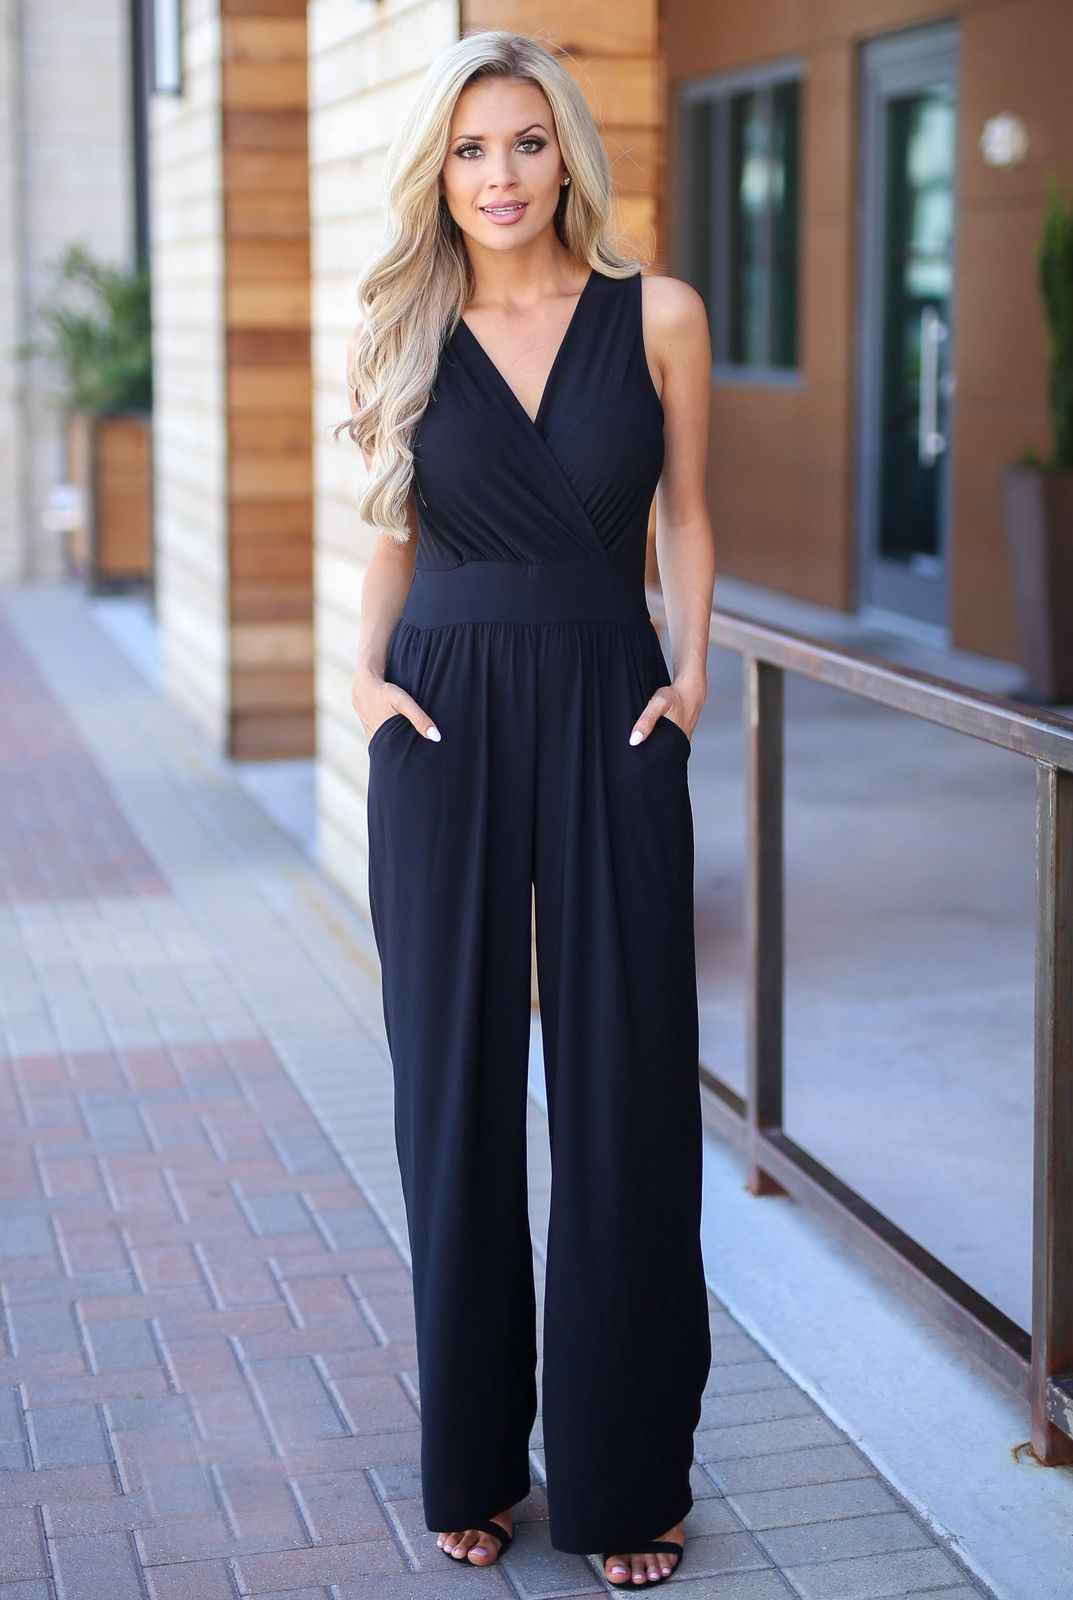 44e3ce6f7 ... New Women Jumpsuit Romper Bodycon Playsuit Elegant OL Sleeveless Solid  Color Casual Wide Leg Trousers Party ...